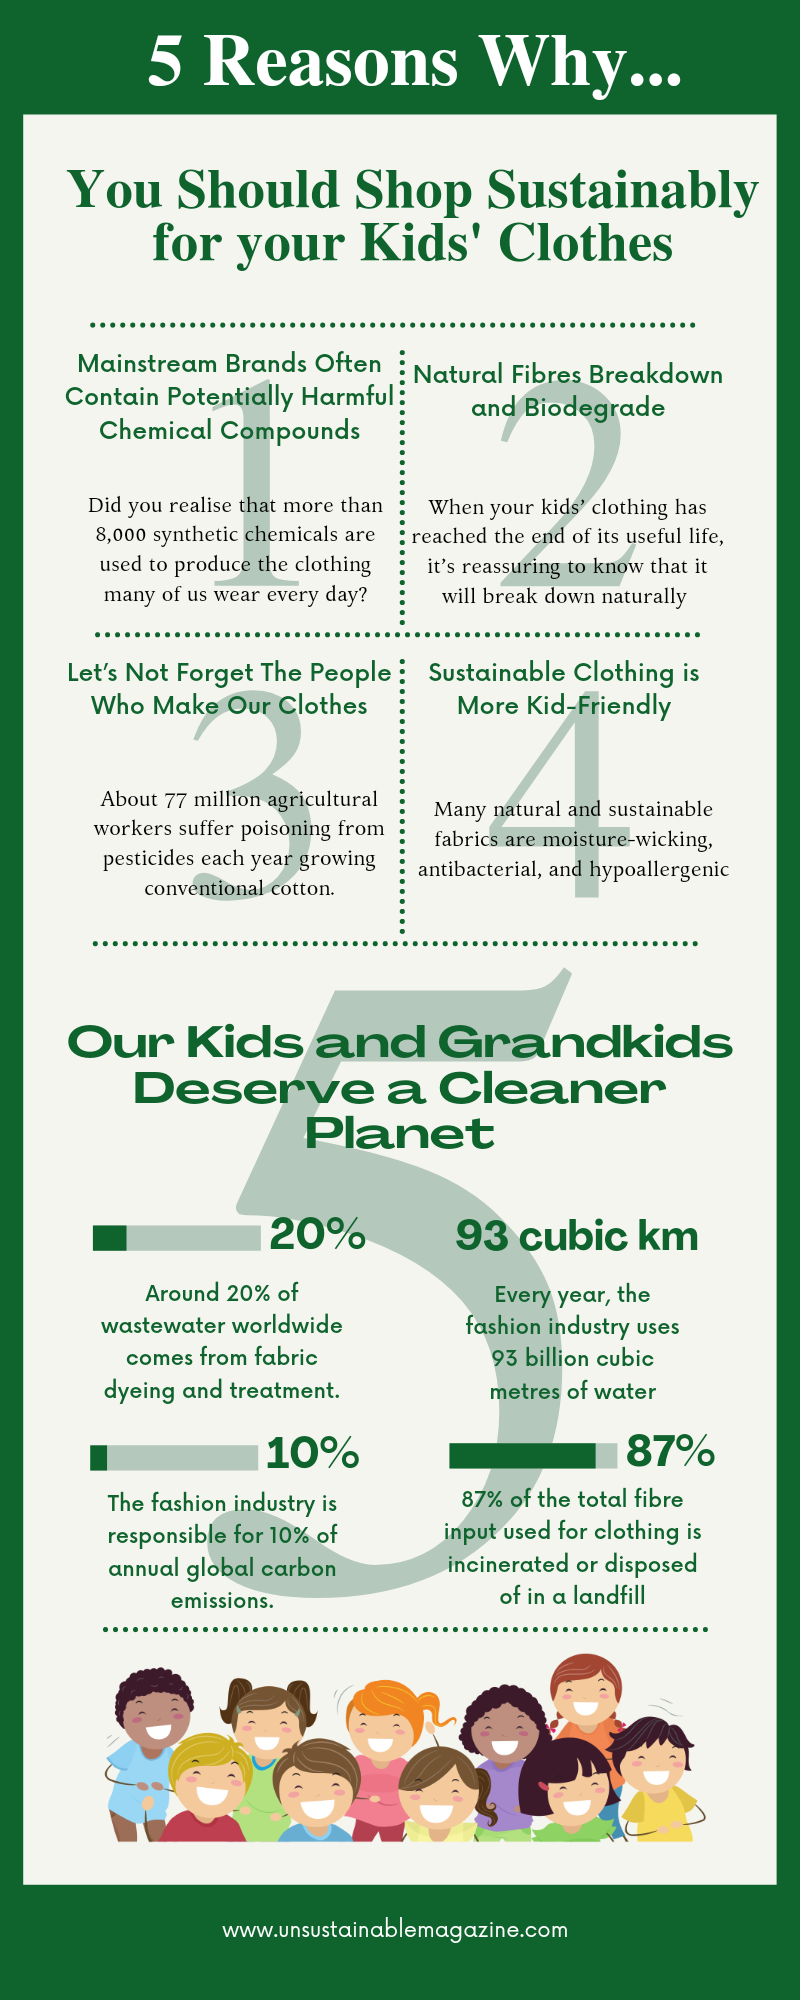 5 reasons why you should shop sustainably for your kids clothing